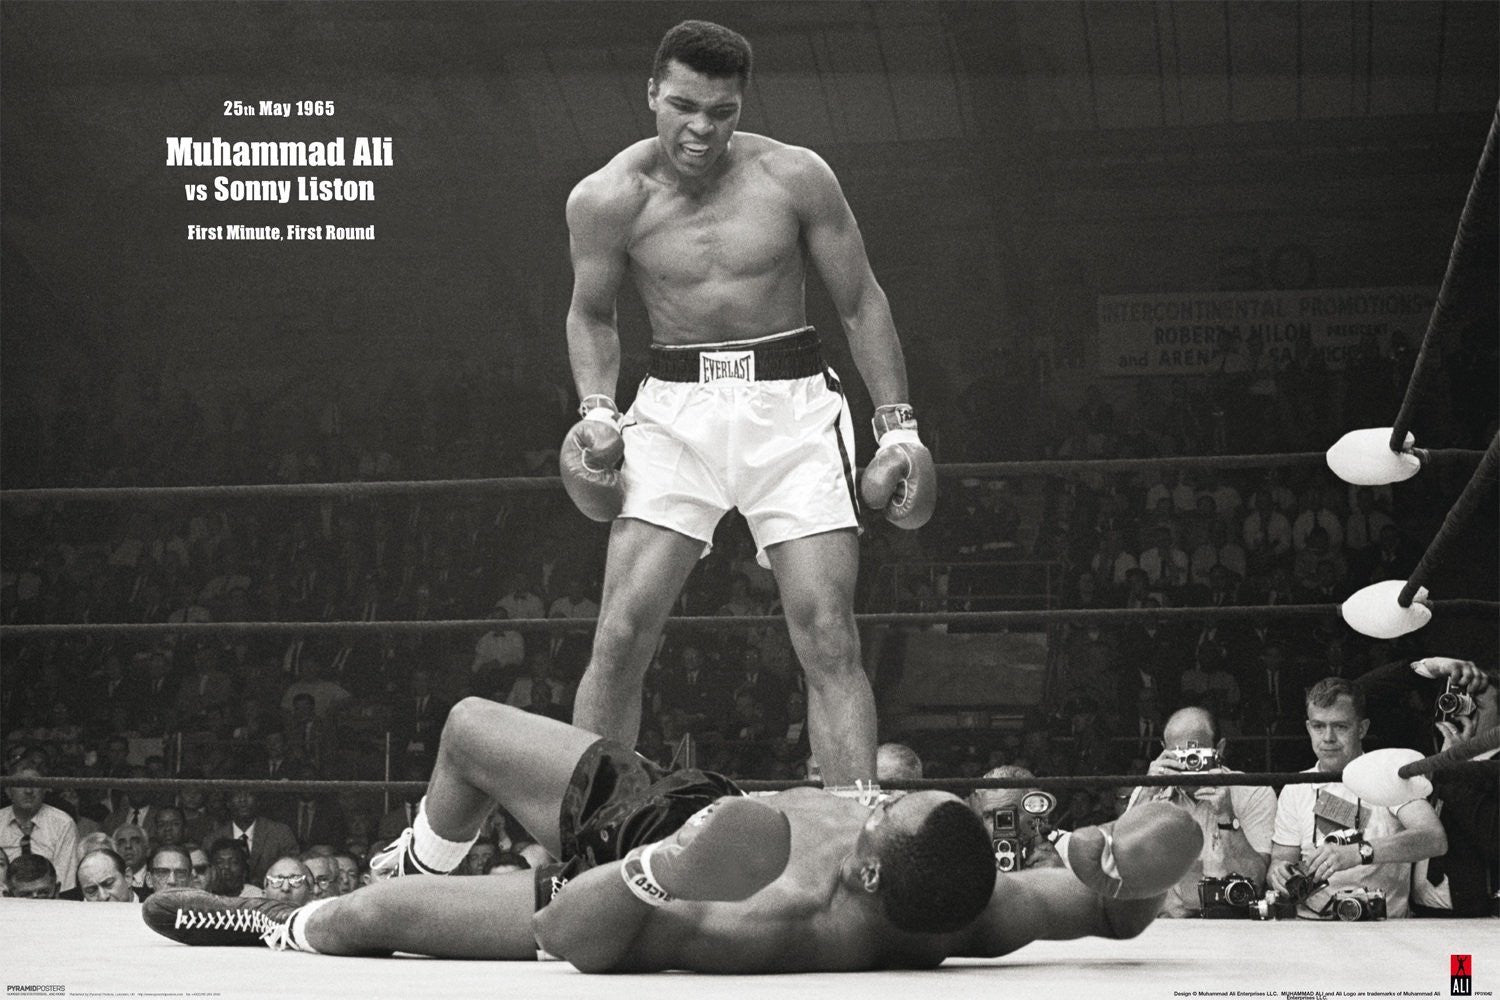 Muhammad Ali vs Sonny Liston Mini Poster -Superherotoystore.com - India - www.superherotoystore.com